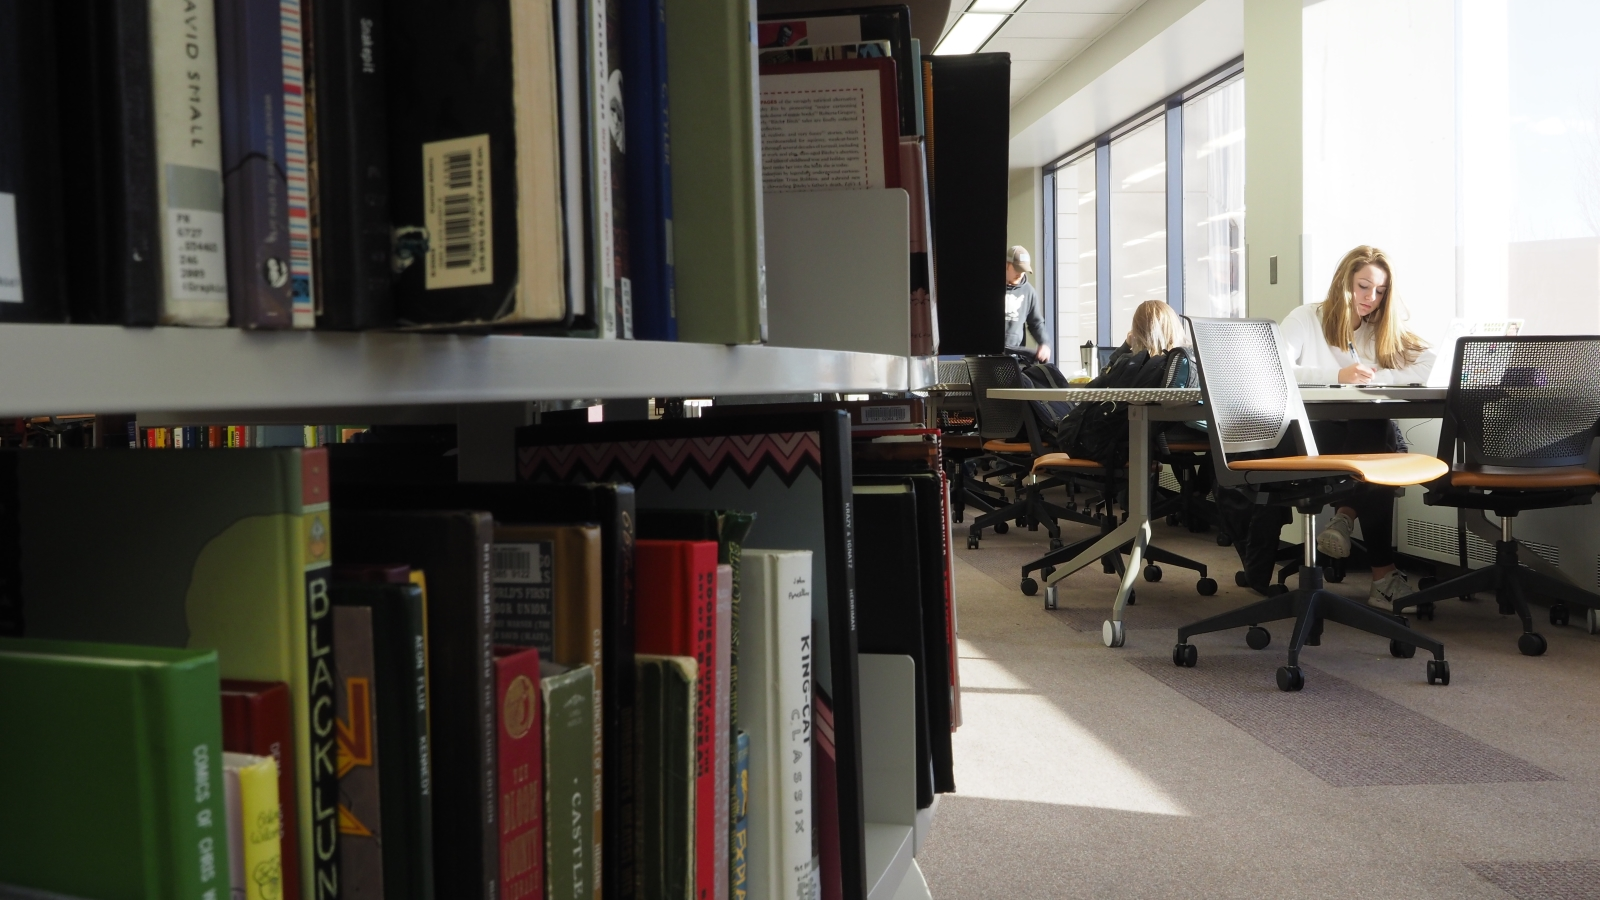 Books on shelves at Waldo Library with student studying in background.